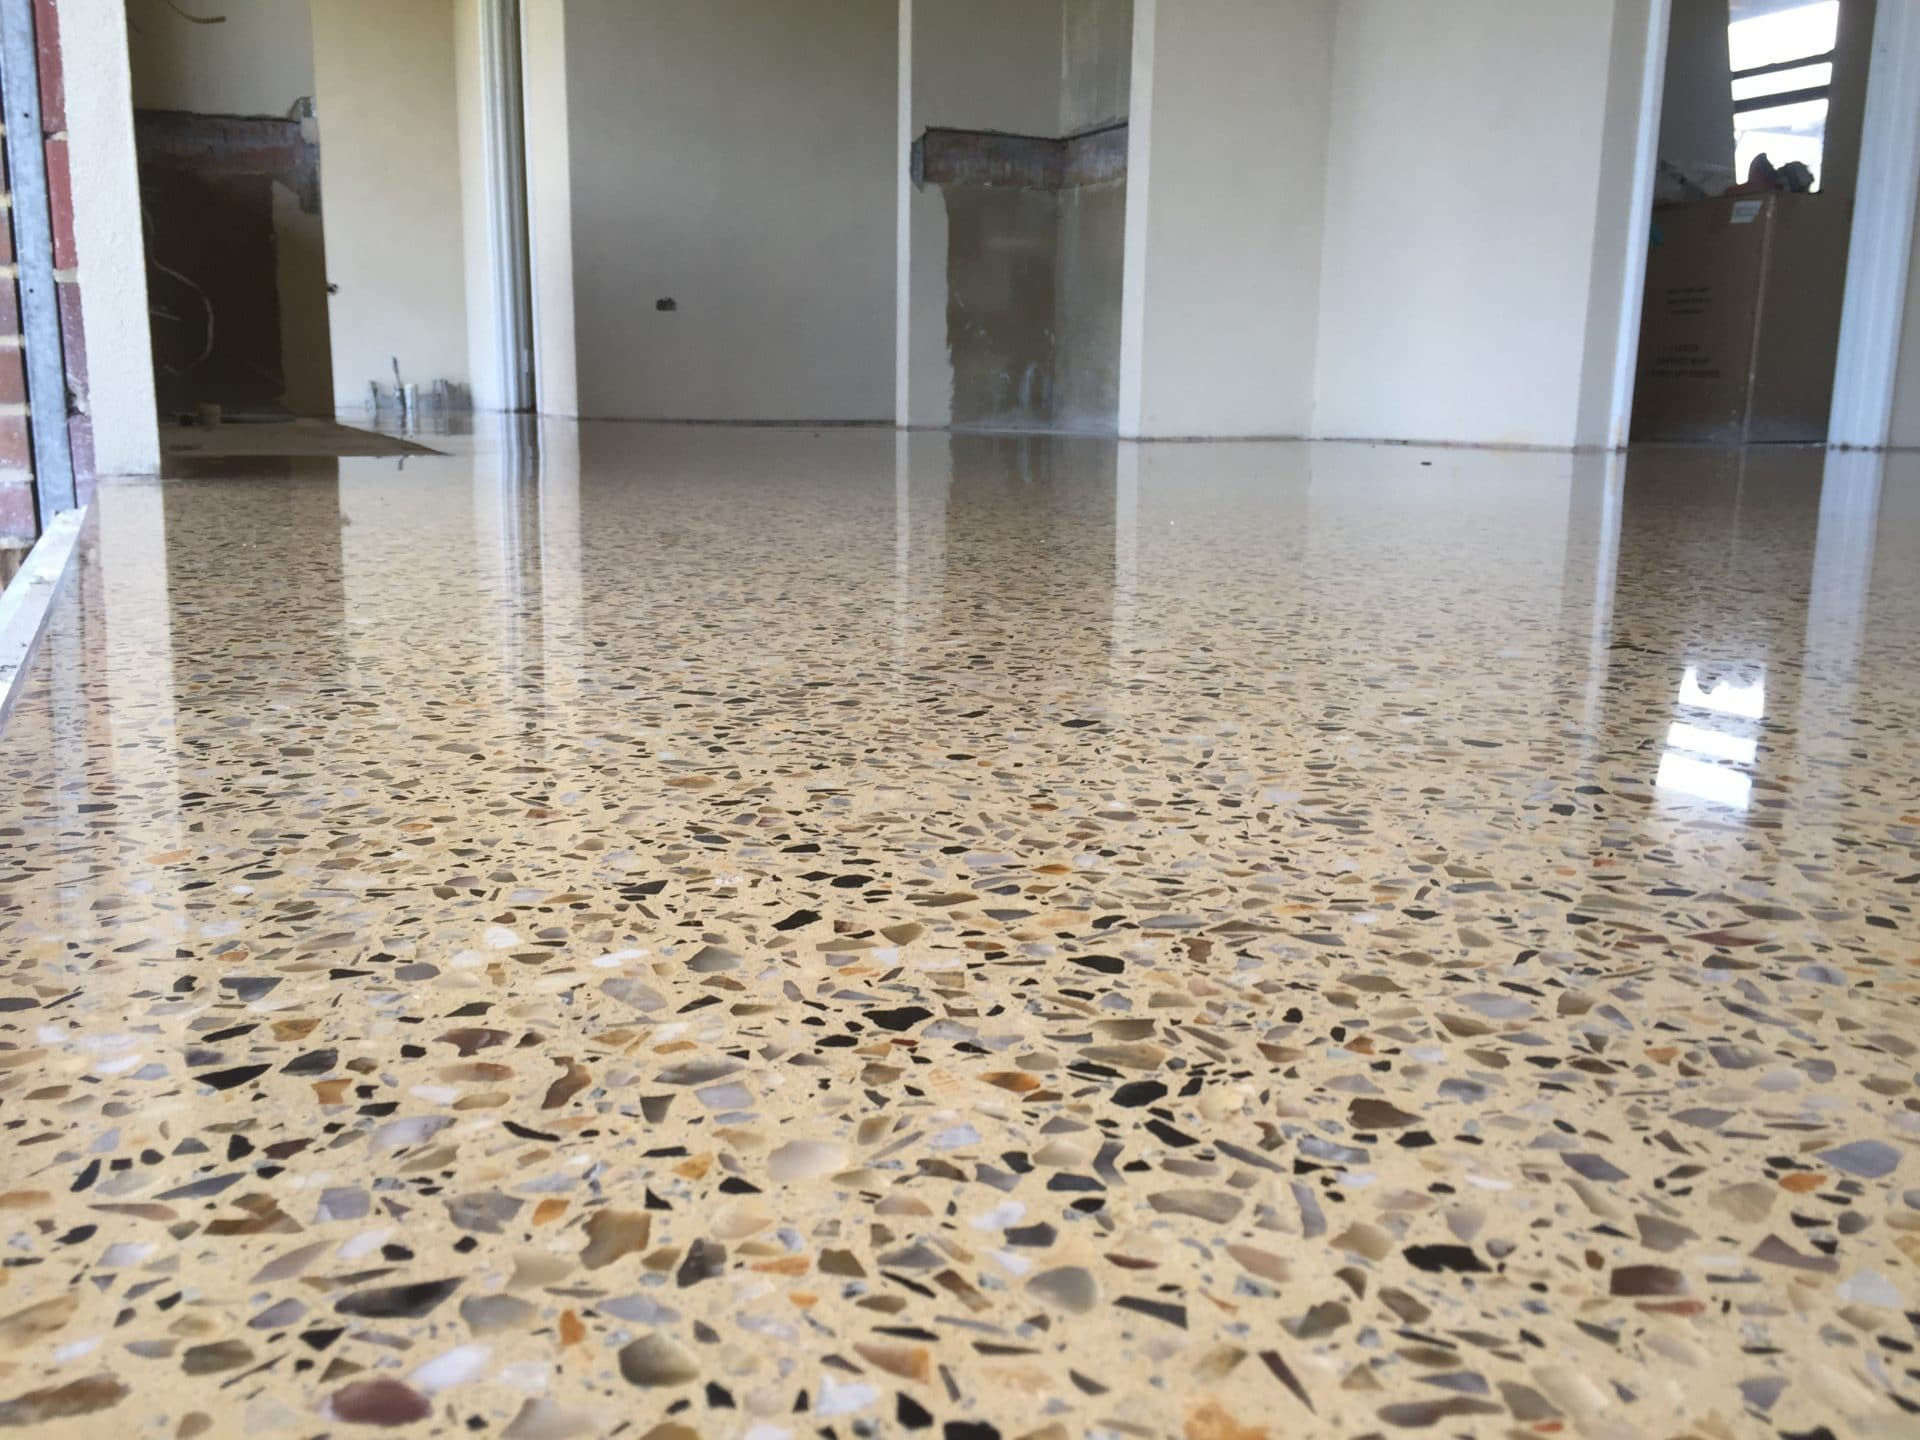 Polished concrete floors in the home